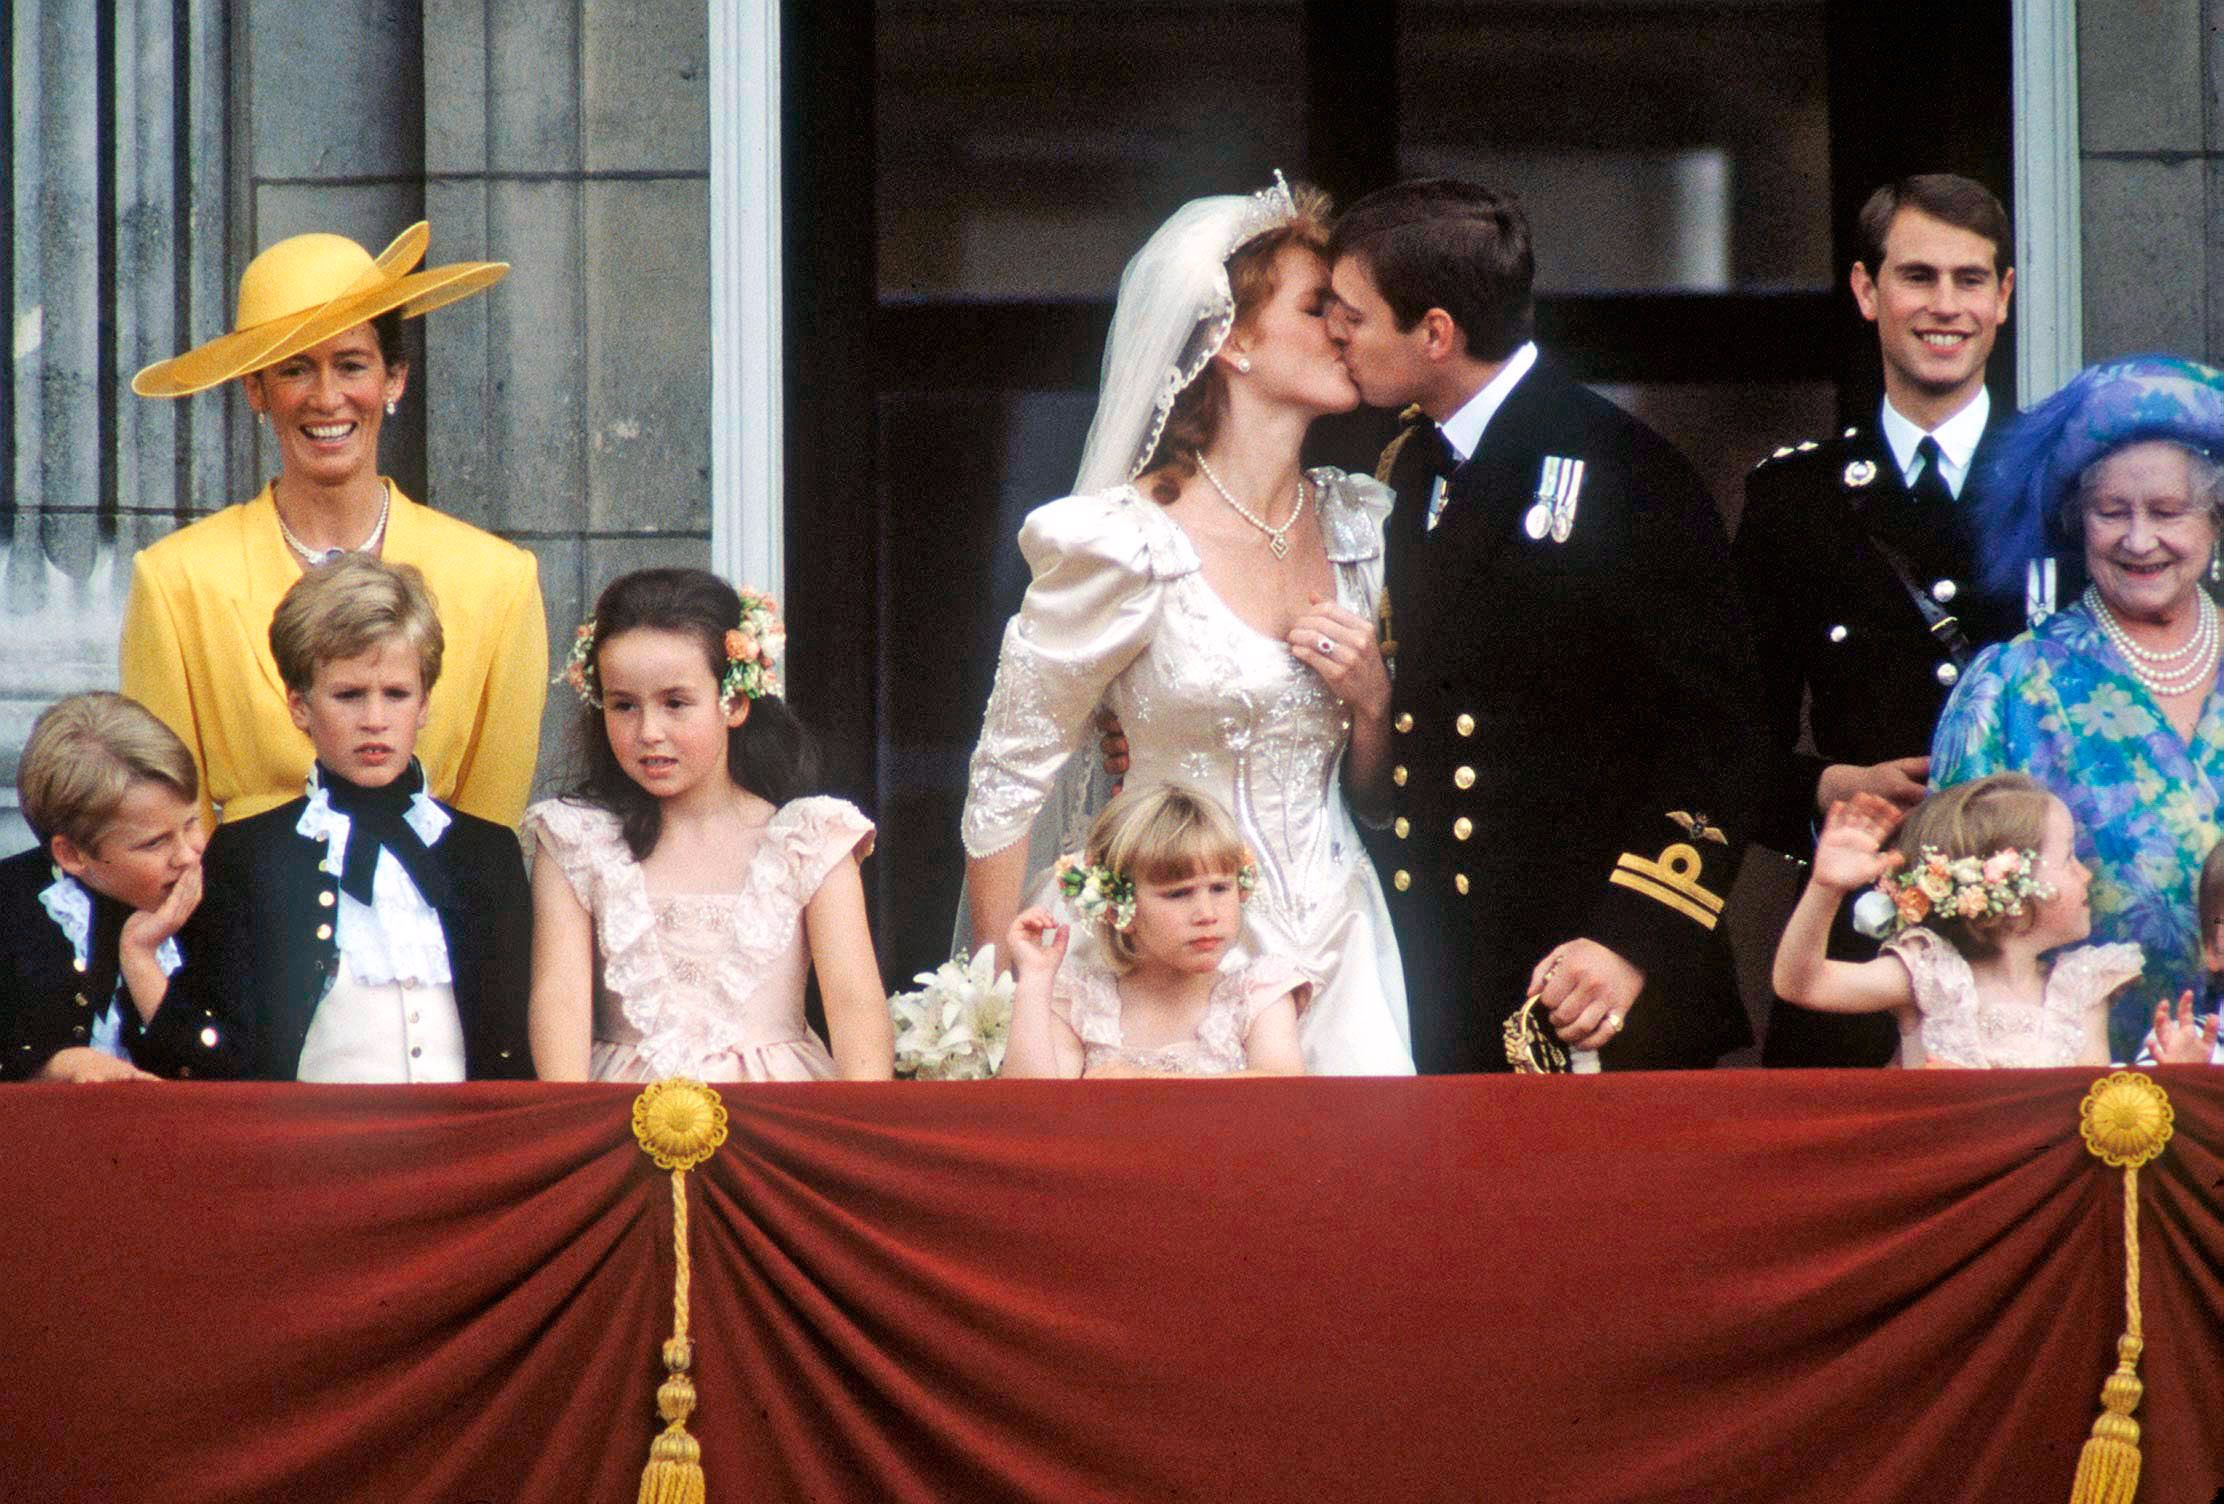 Royal Wedding Kiss.The Evolution Of The Royal Wedding Kiss